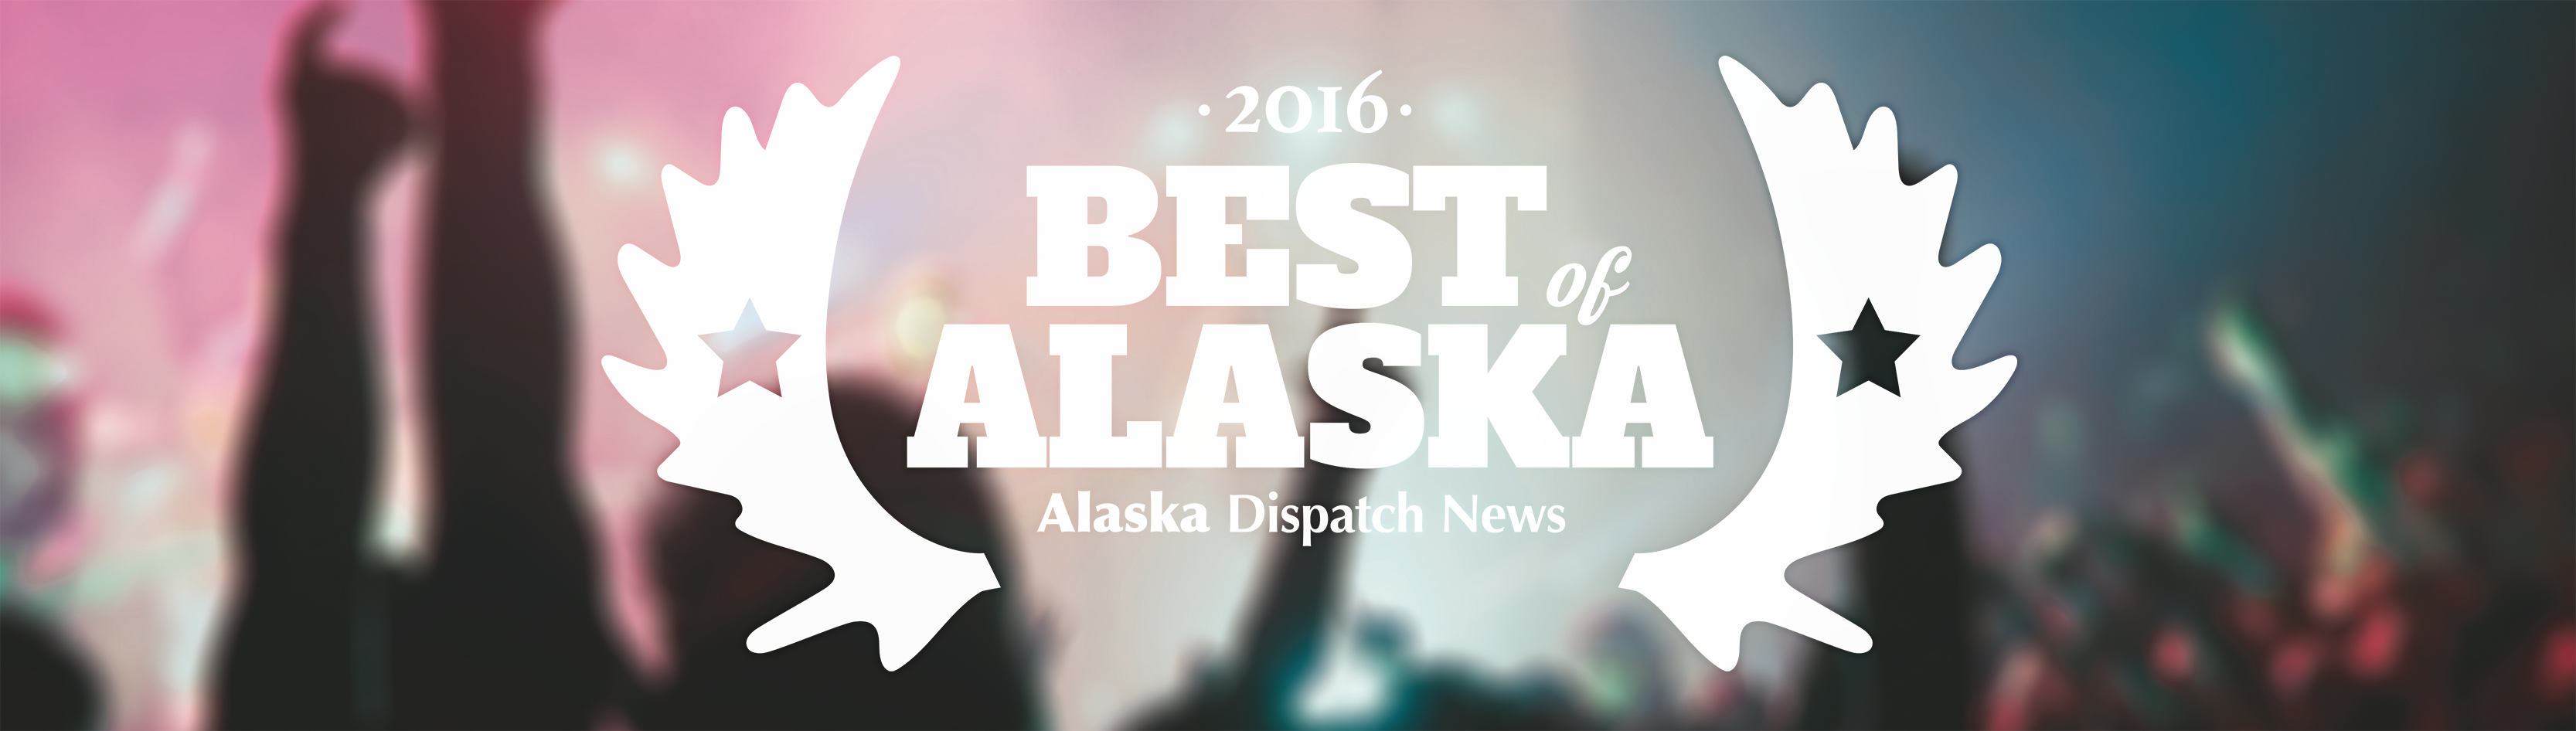 2016 Best of Alaska Showcase